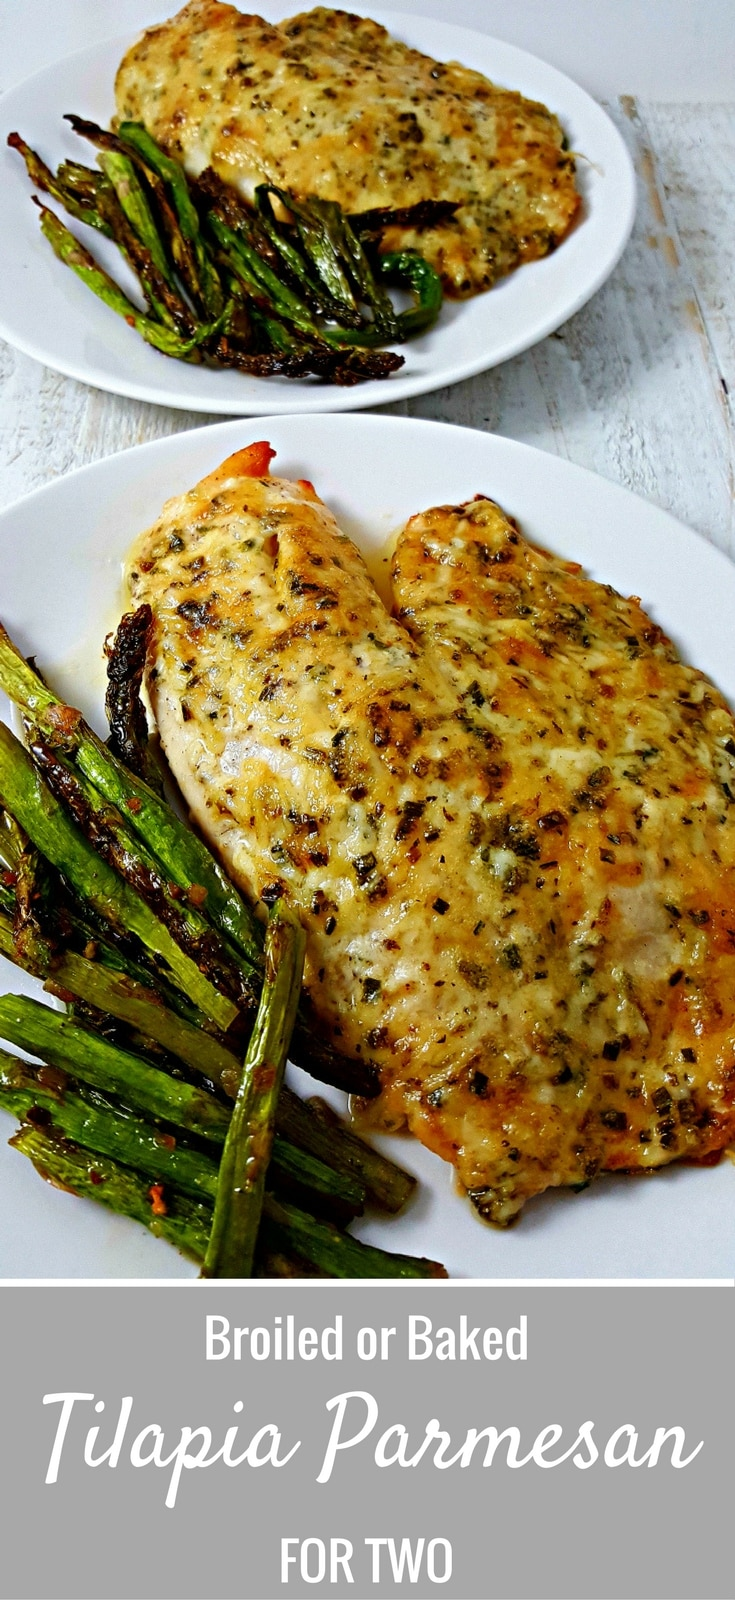 This Tilapia Parmesan for two recipe is so easy and quick to prepare. I am not usually big on fish, but I absolutely love the flavor and ease of this Tilapia. It is a mild fish and the sauce on top is cheesy, golden brown and savory. This dish can be baked or broiled.